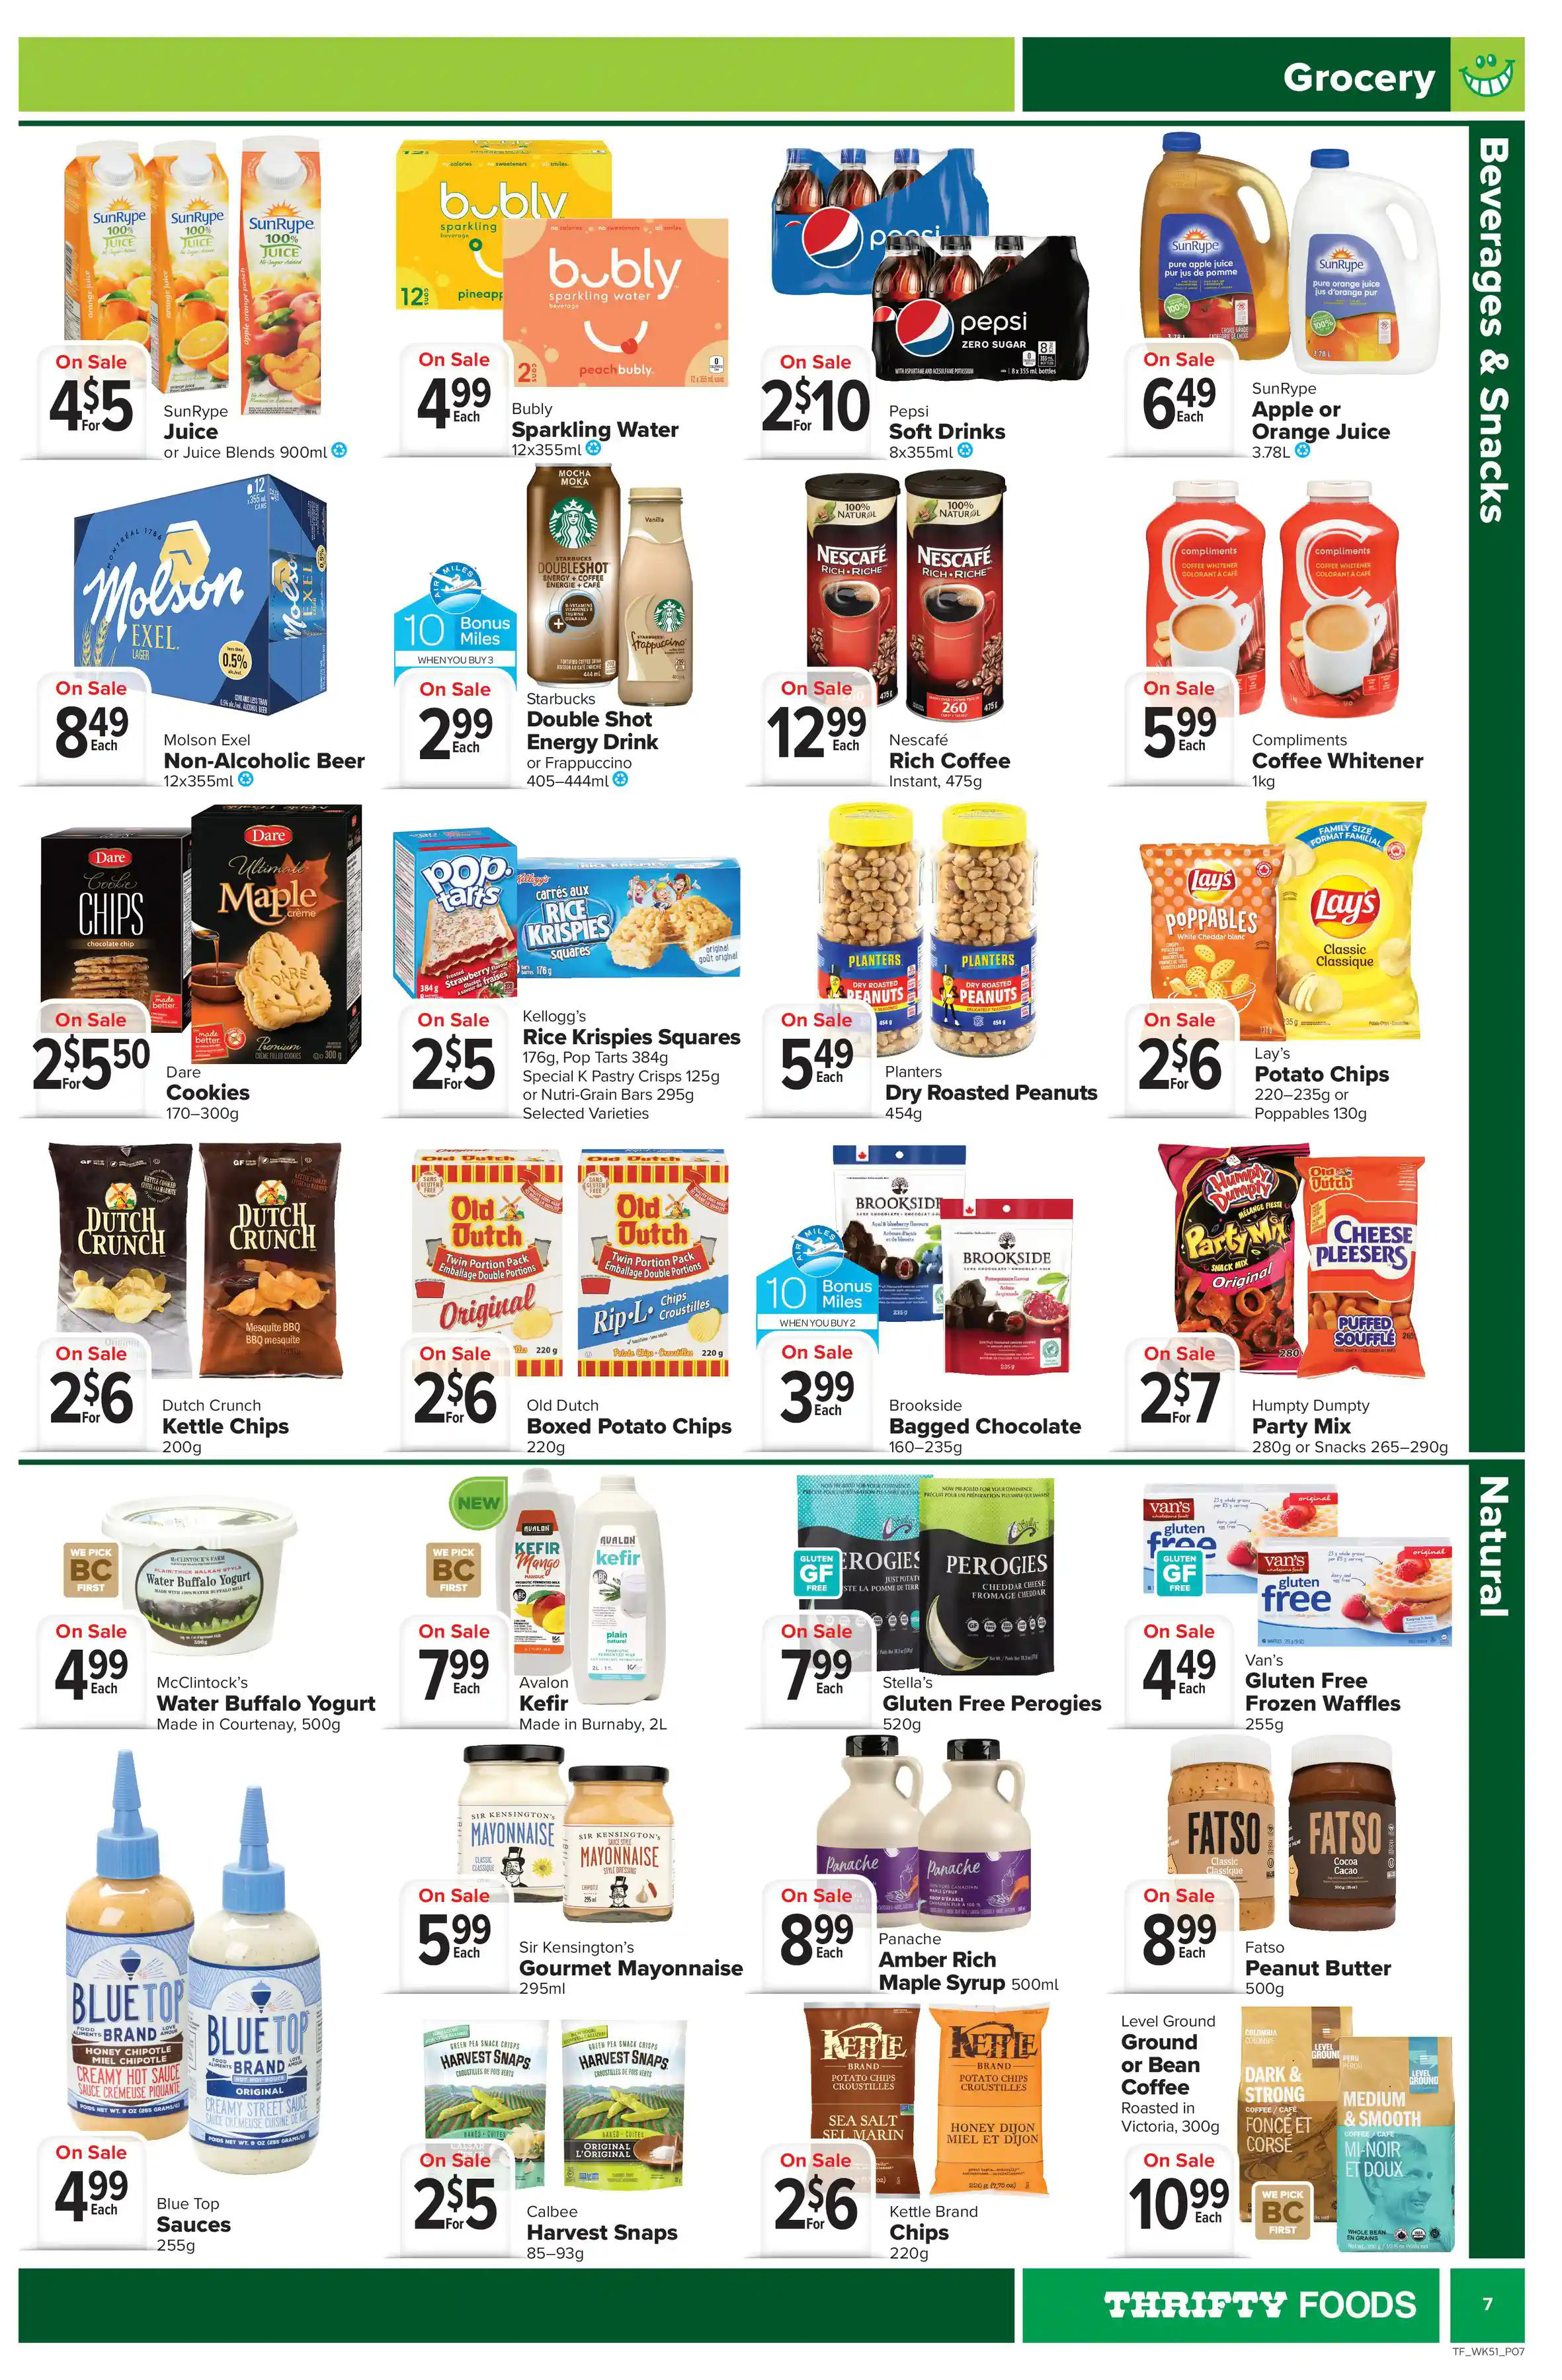 Thrifty Foods - Weekly Flyer Specials - Page 11